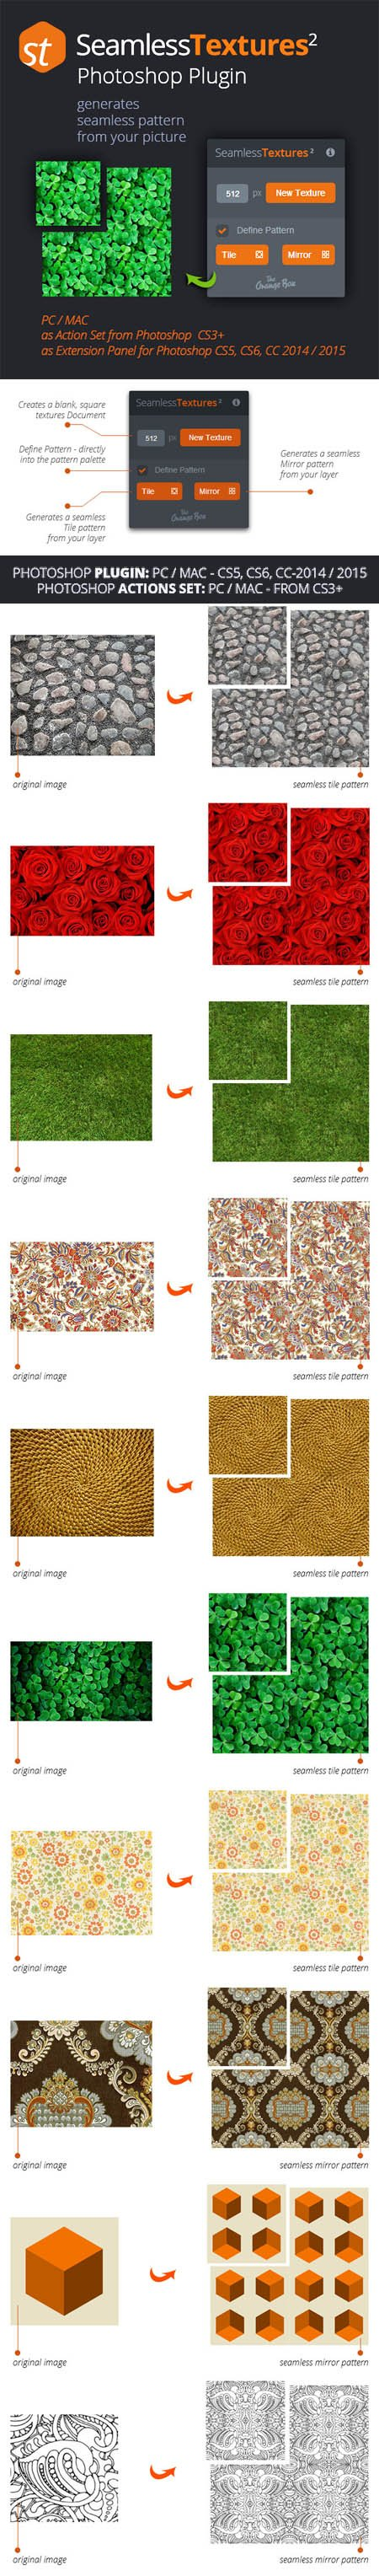 Seamless Textures Generator Version 2 Plugin for Photoshop